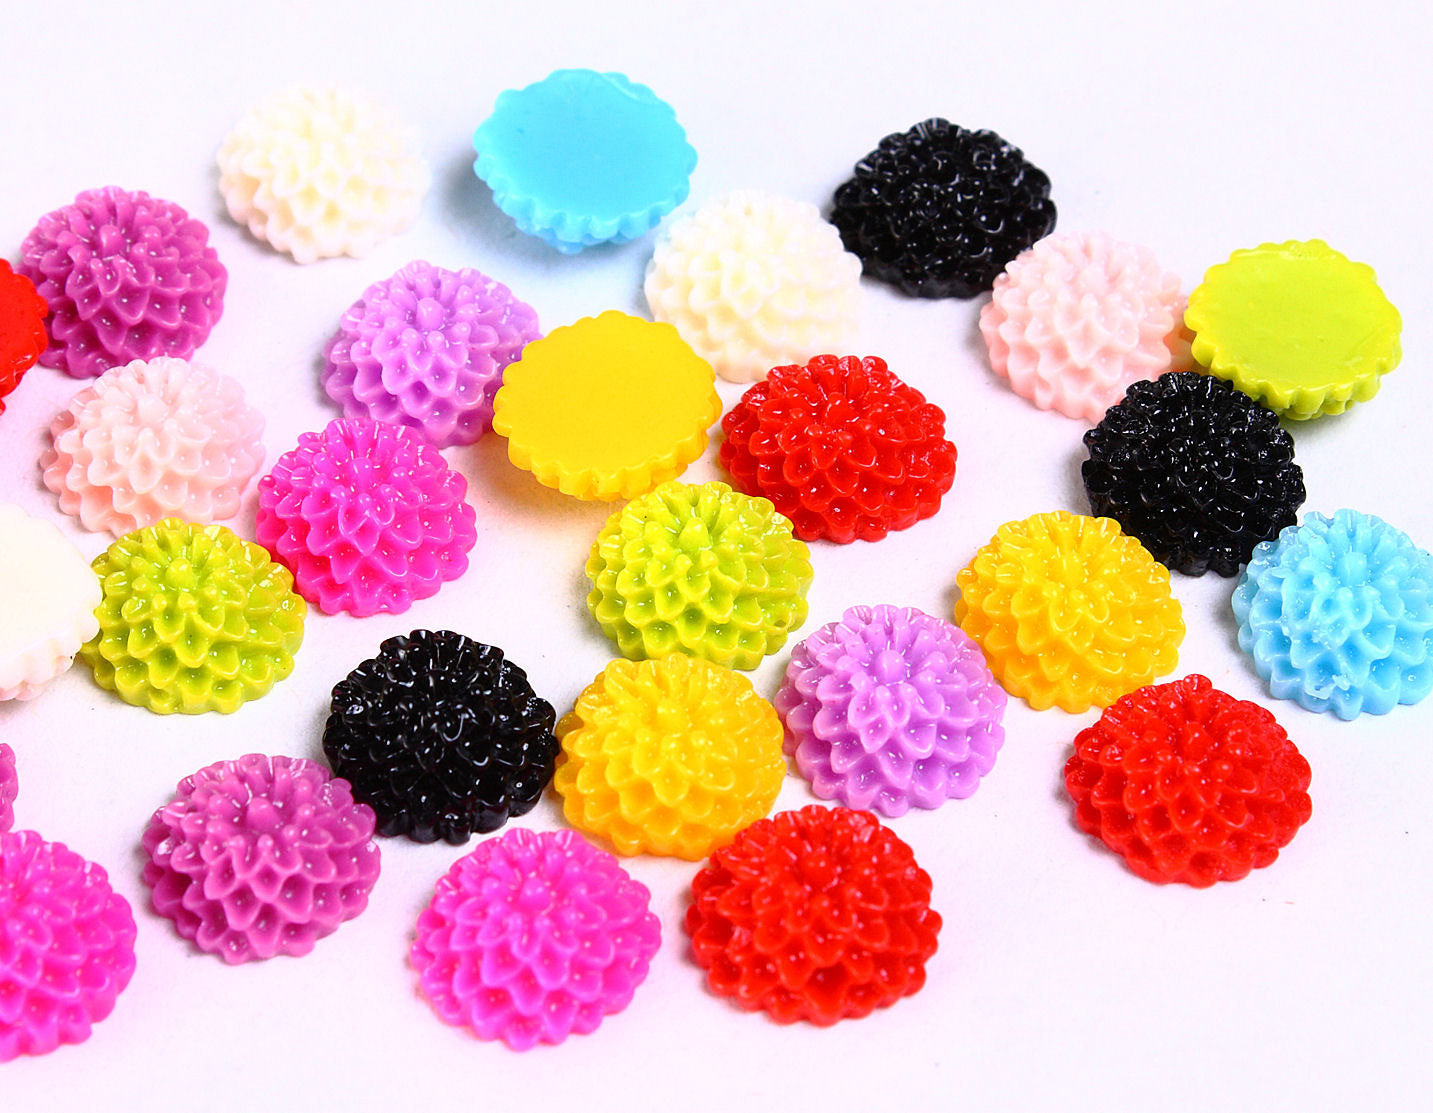 10mm mum cabochons - 10mm dahlia cabochons - 10mm flower cabochon - mixed color - 10 pieces (946---)